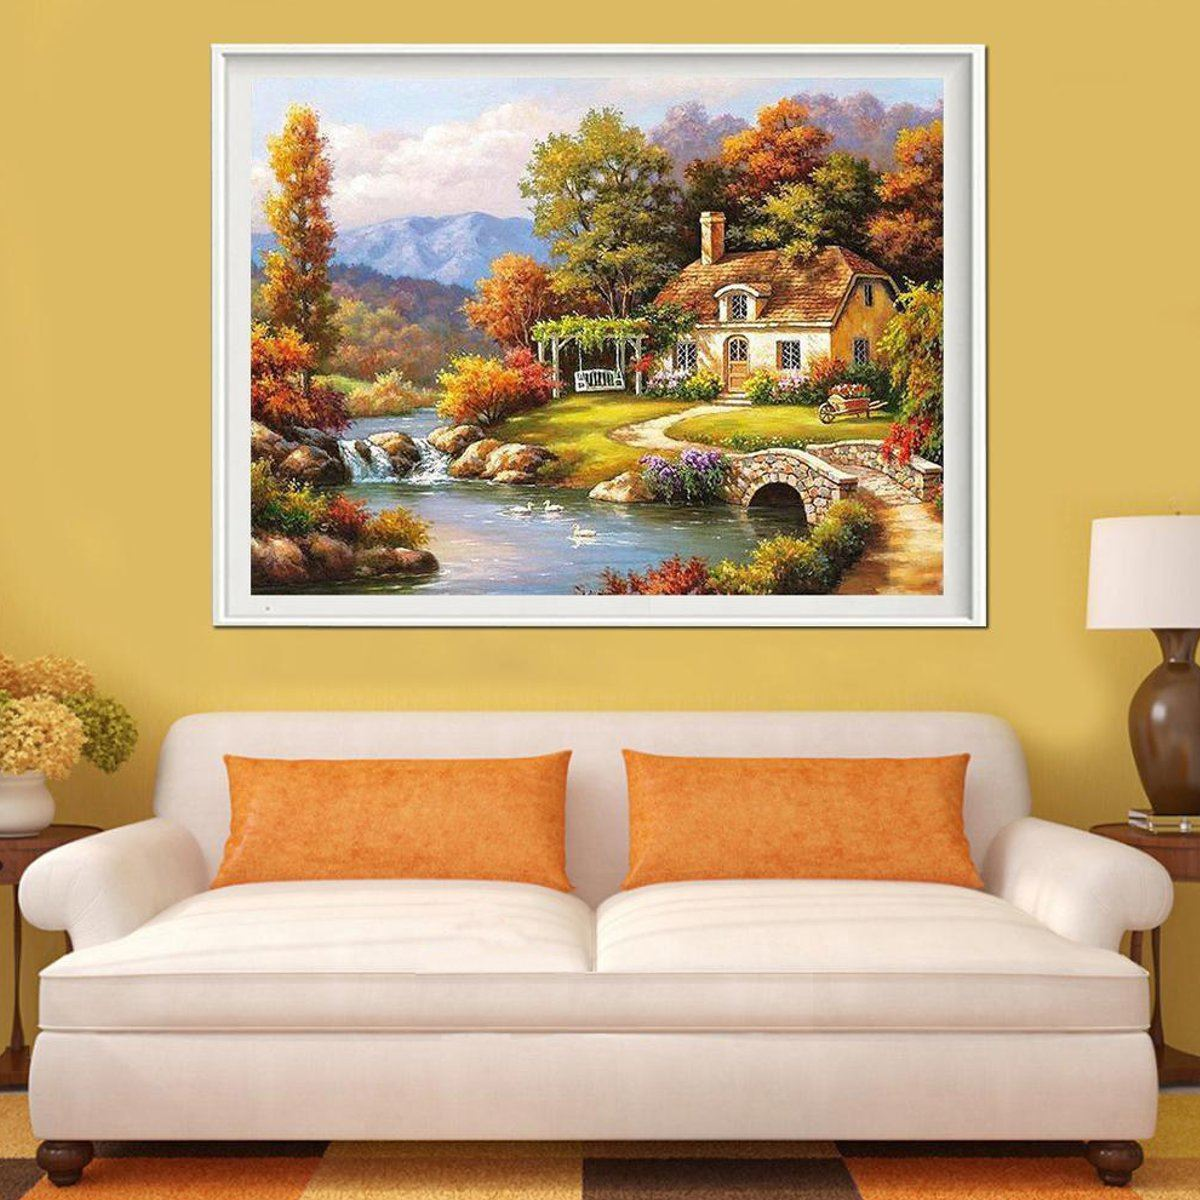 no frame canvas digital acrylic painting by number kit bridge river scenery canvas painting home room